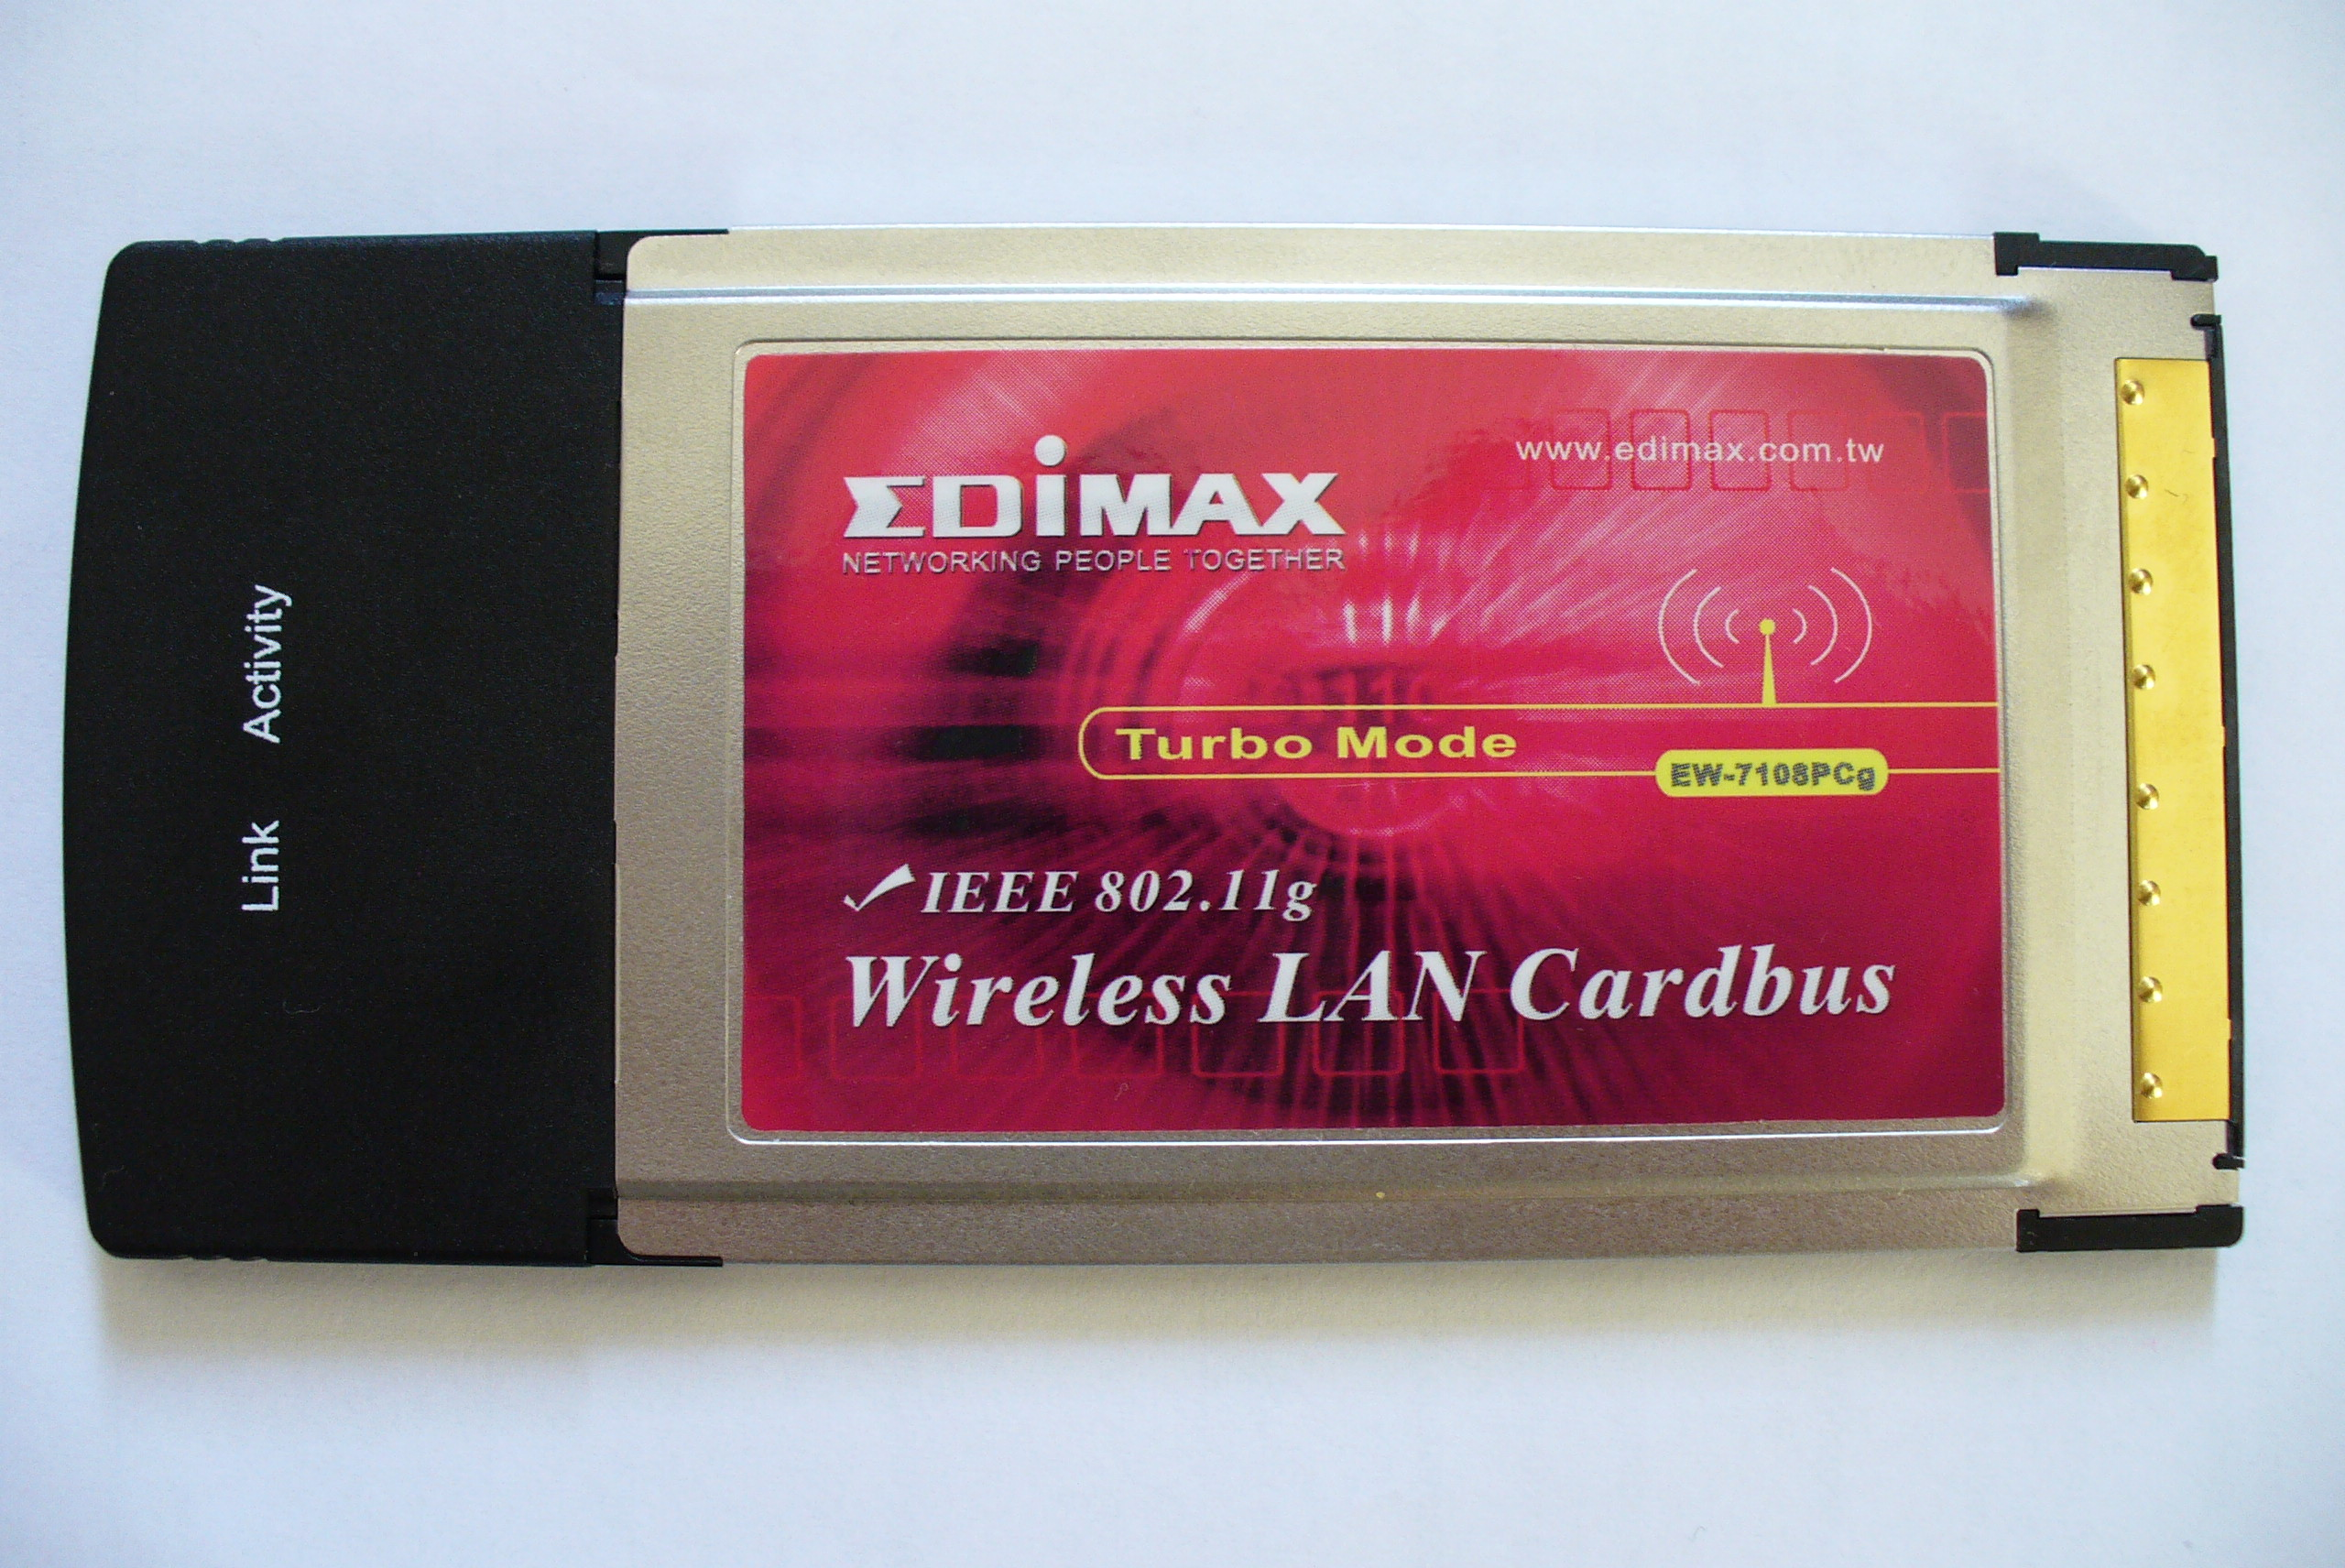 EDIMAX CARDBUS WIRELESS LAN DRIVER FOR WINDOWS